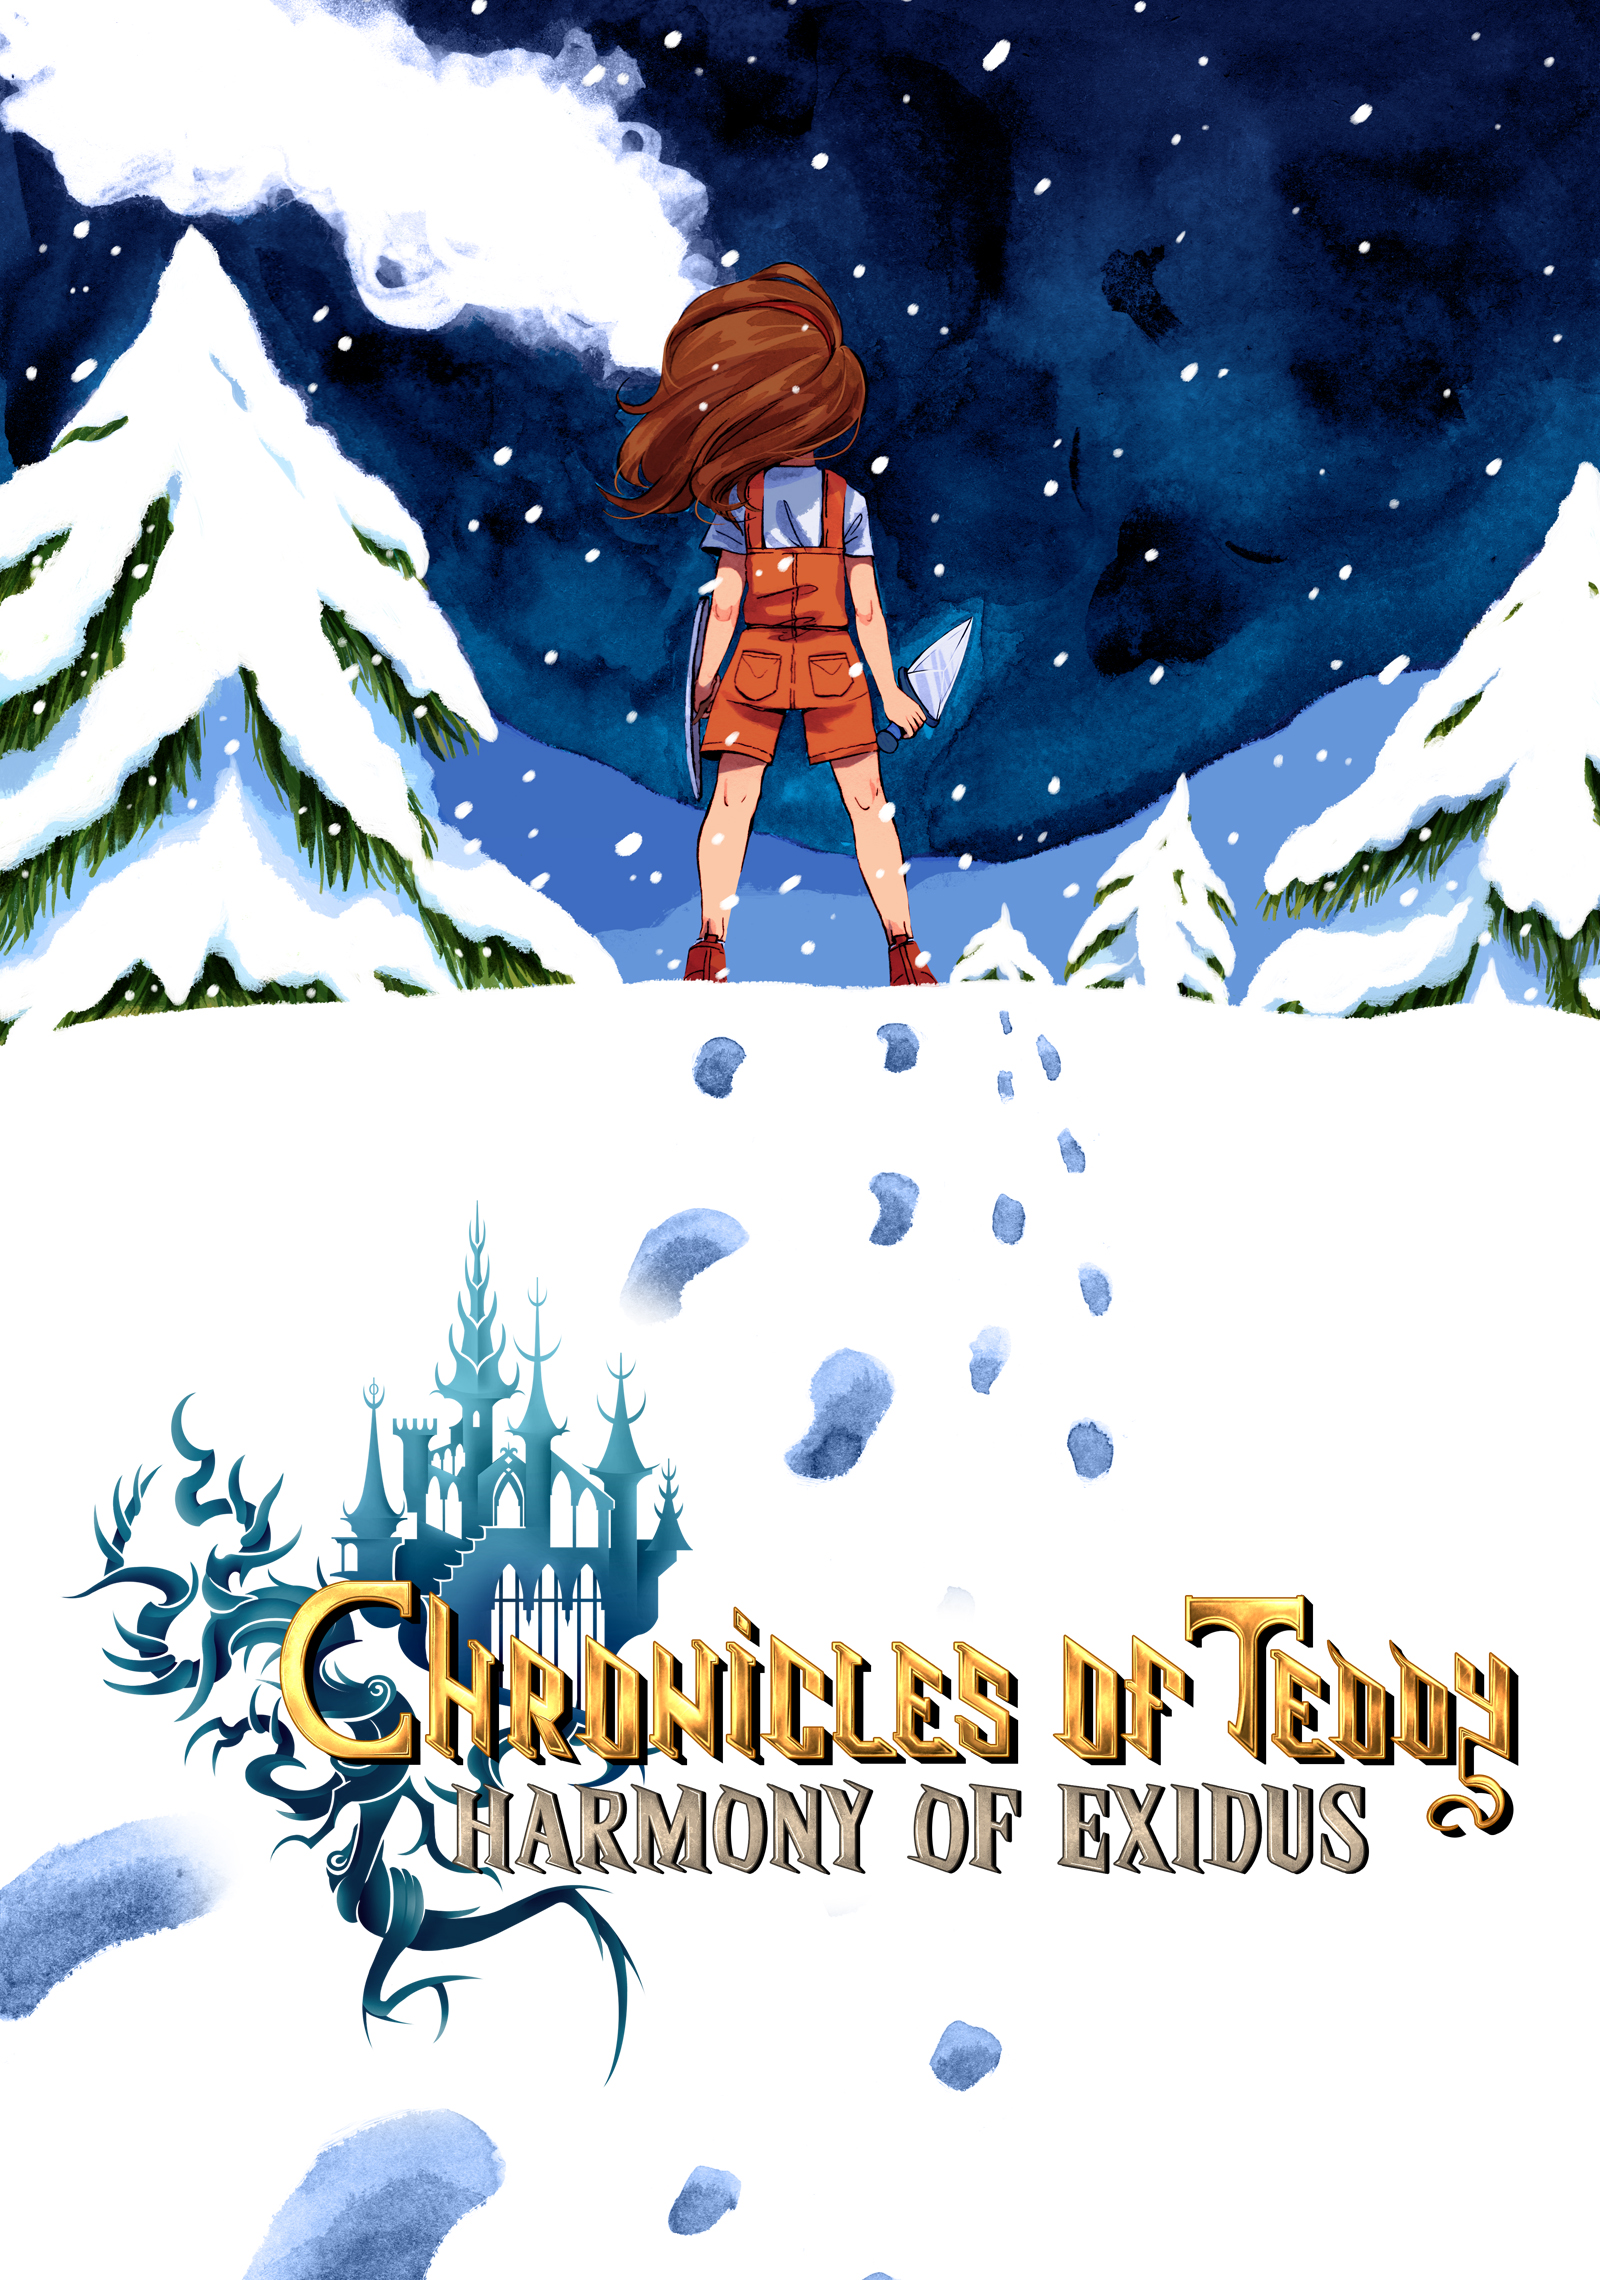 Chronicles of Teddy - Harmony Of Exidus |